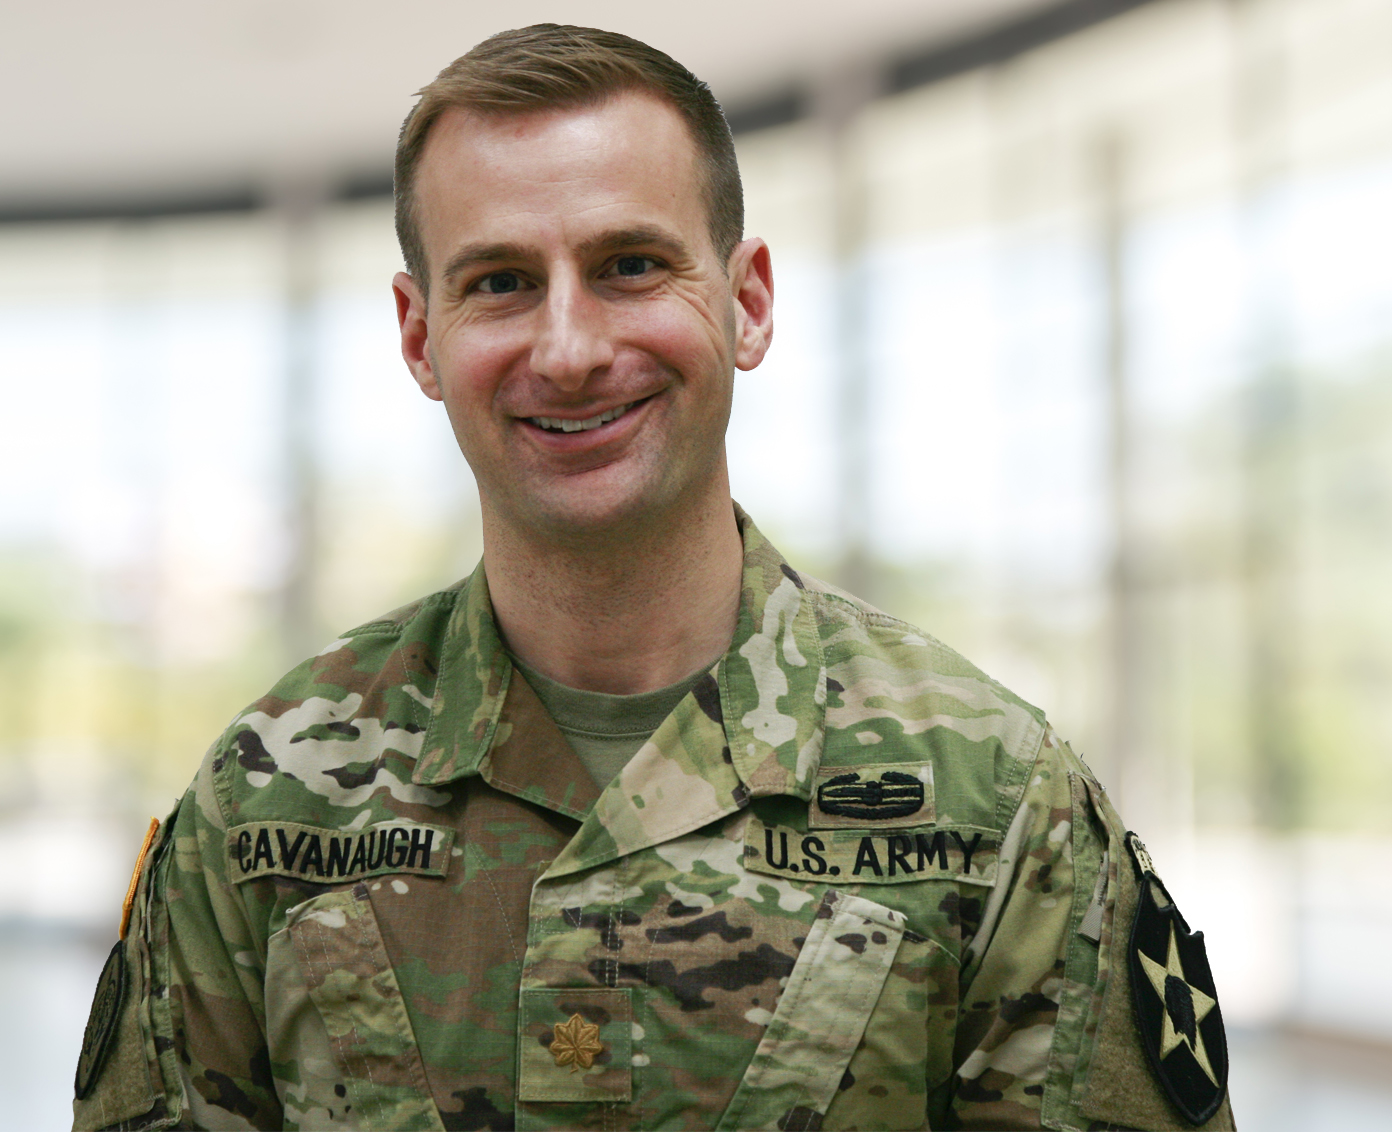 MARIAN: Importance of shaving in the military